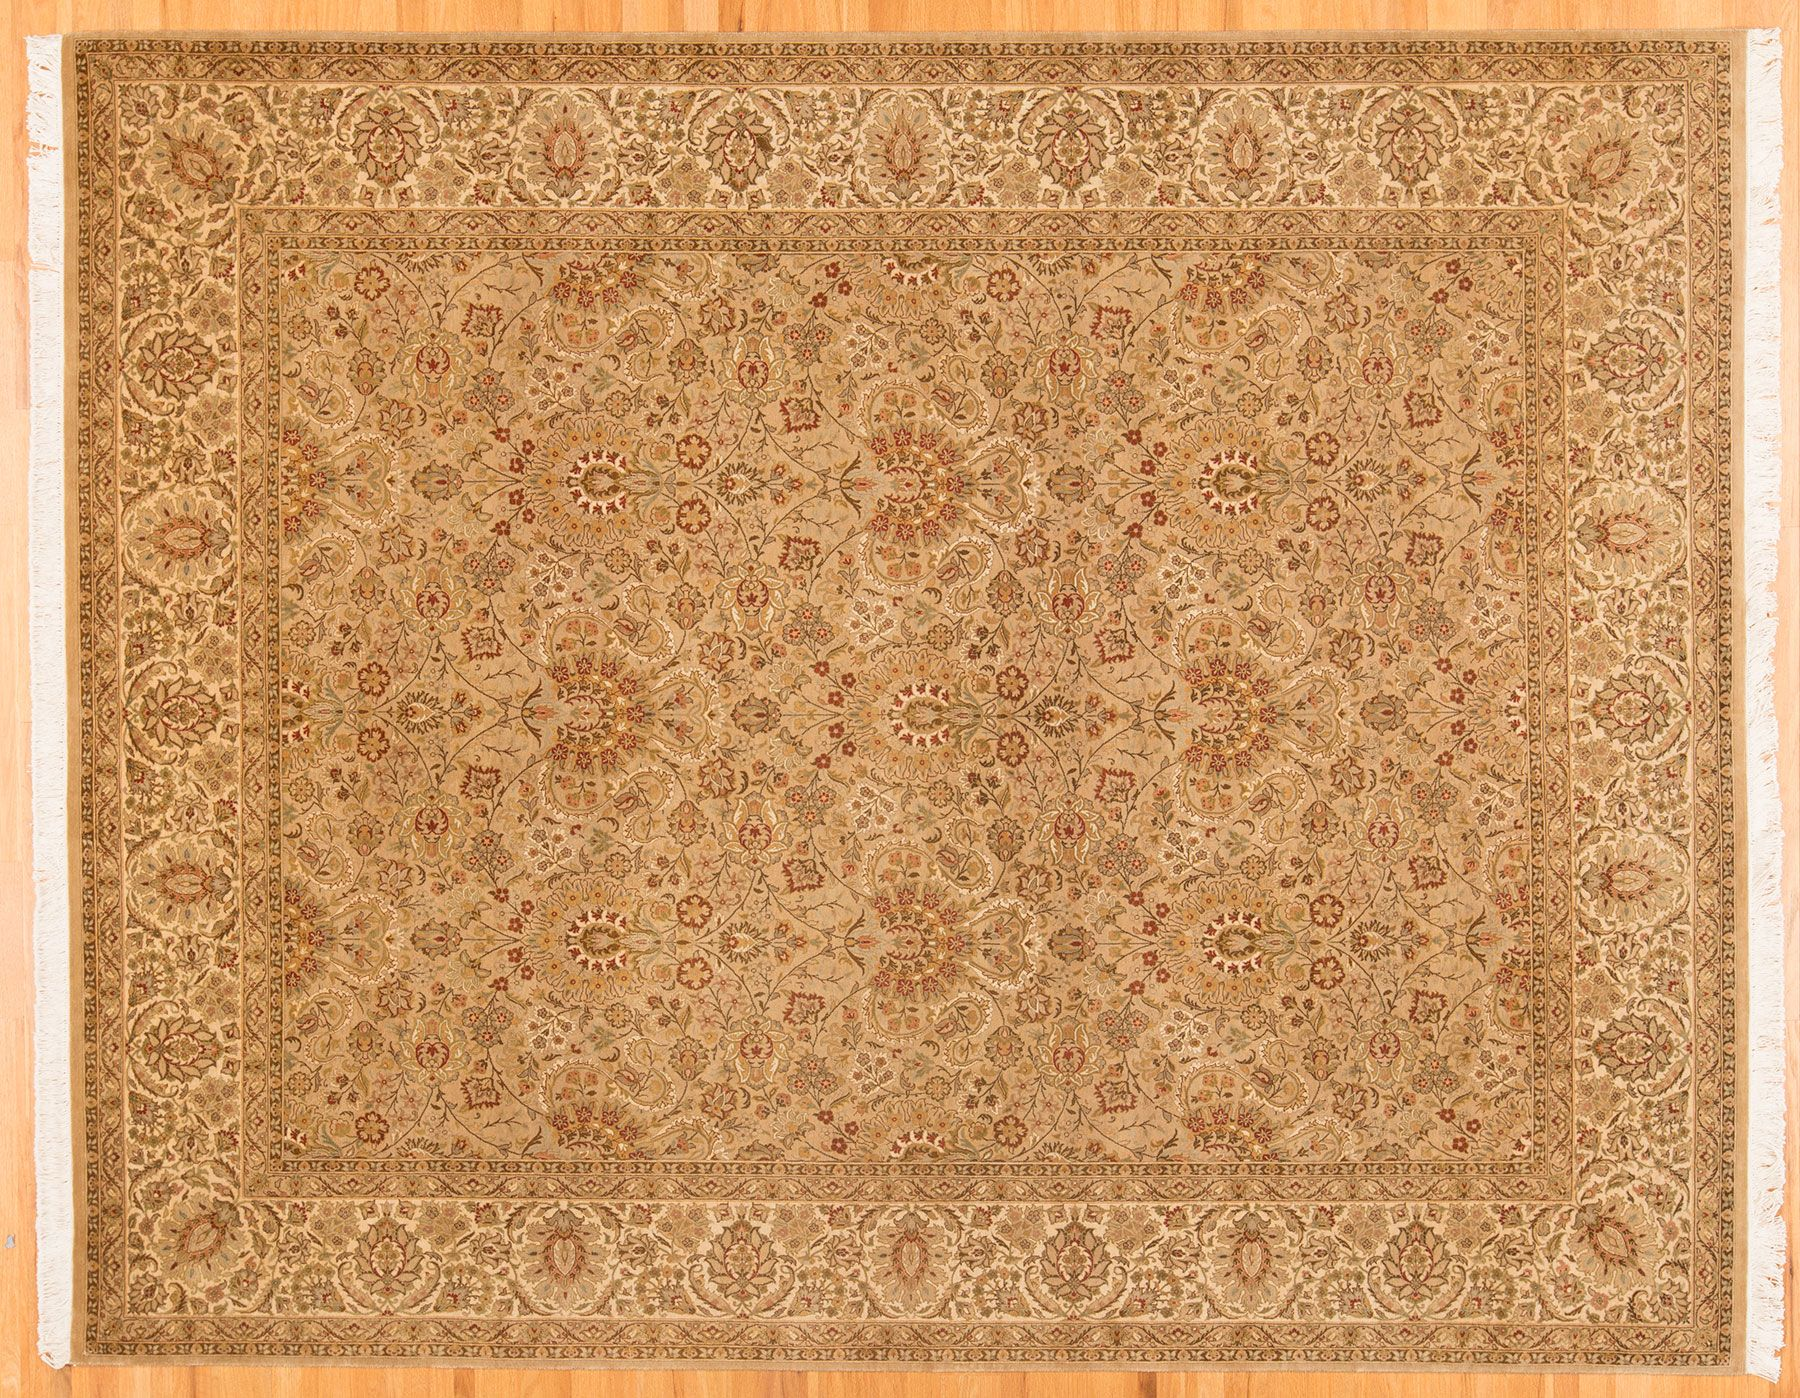 8x10 Kashan With Stunning Detail Visit Us To See The